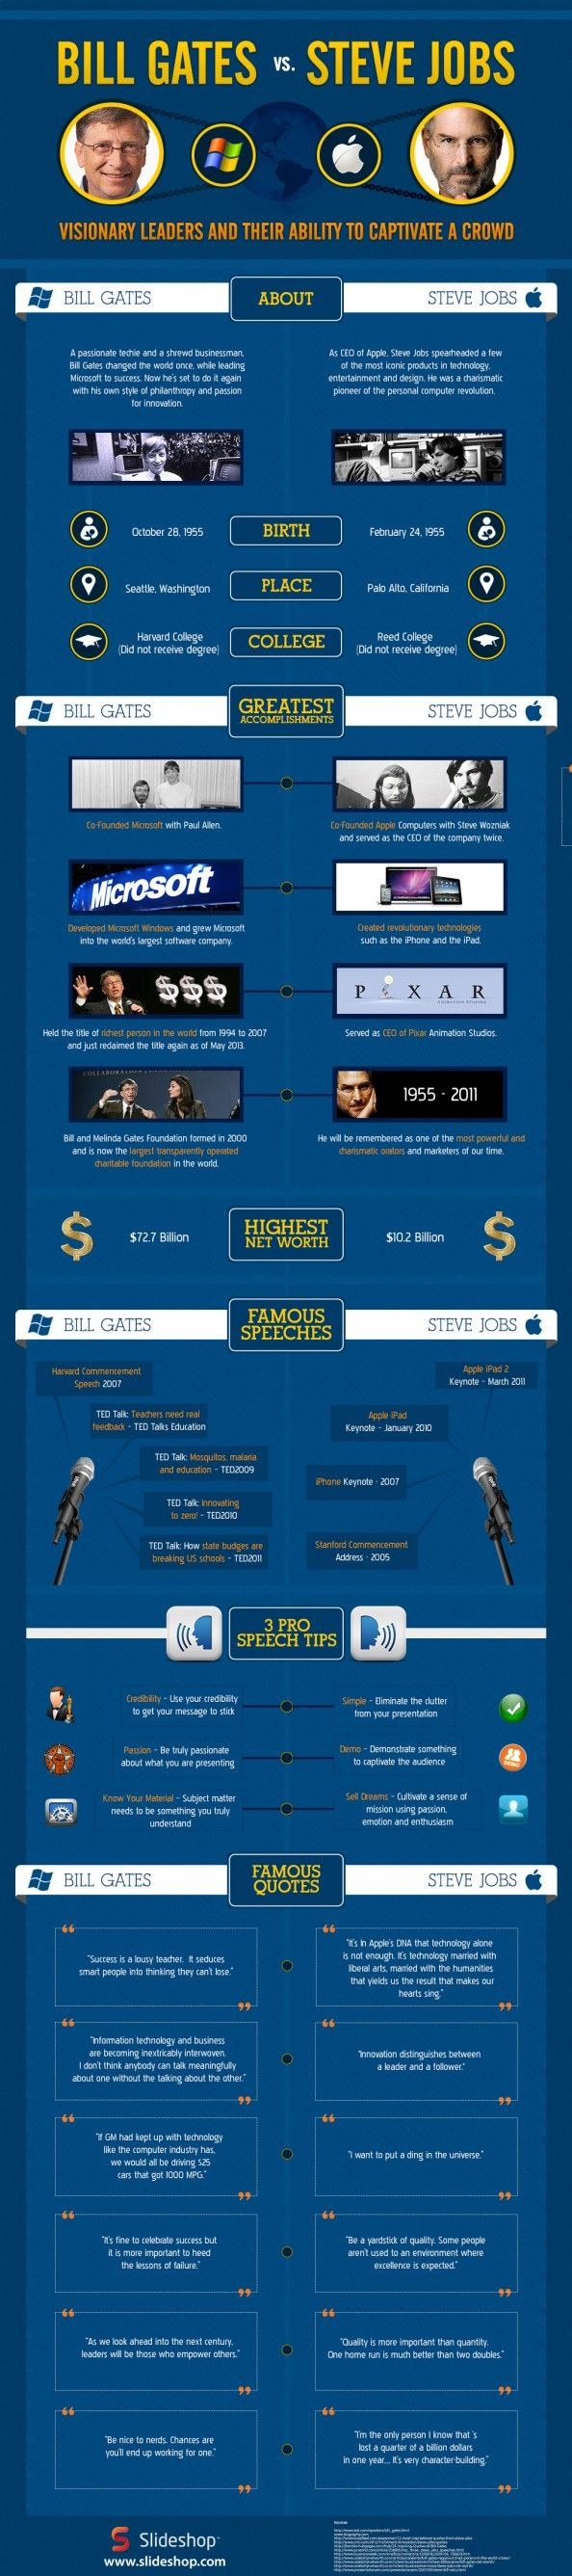 Bill Gates vs. Steve Jobs